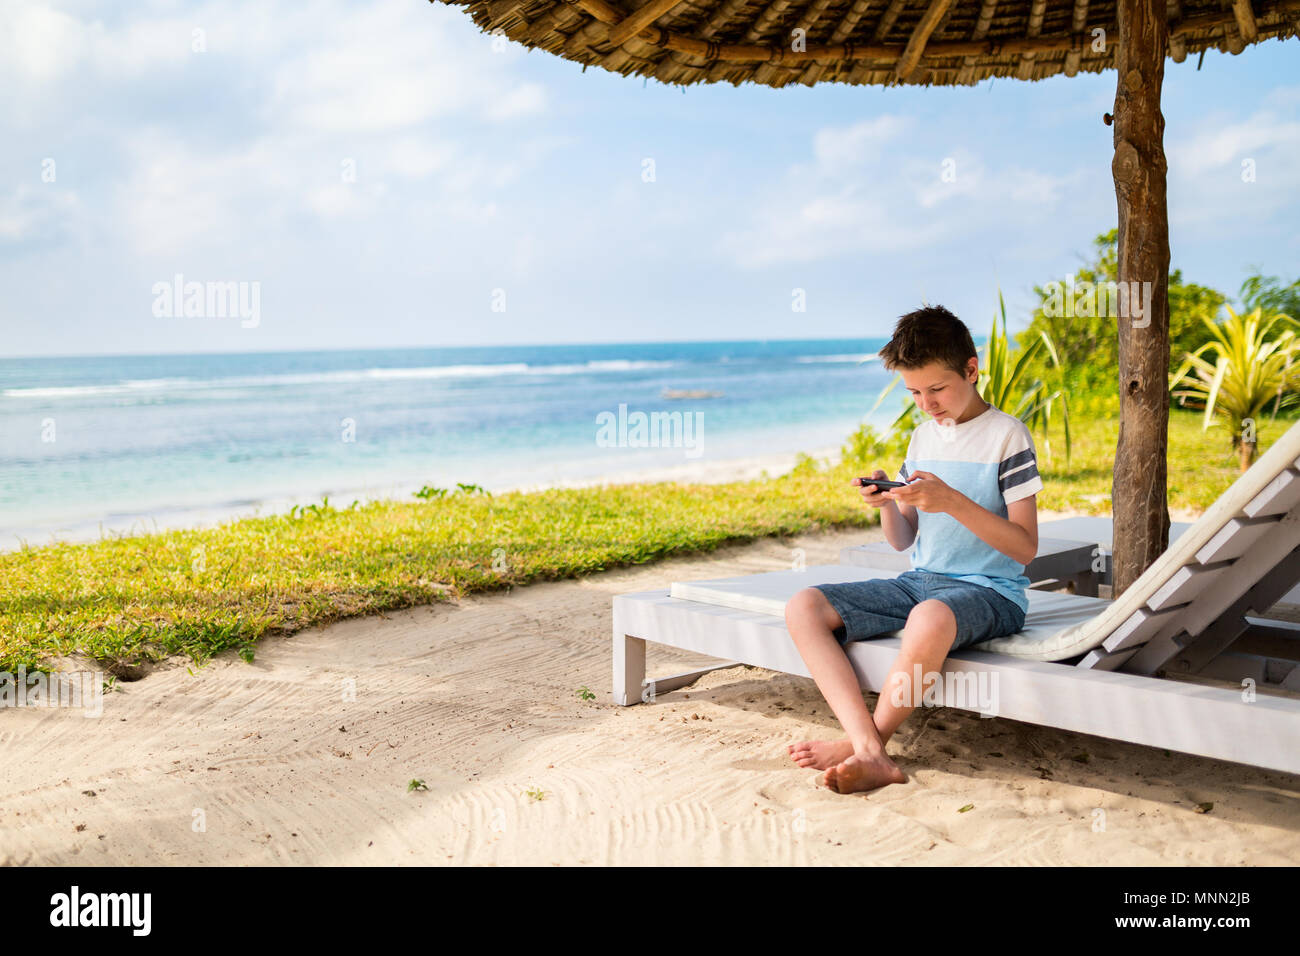 Handsome pre-teen age boy playing on phone at tropical beach on summer vacation Stock Photo